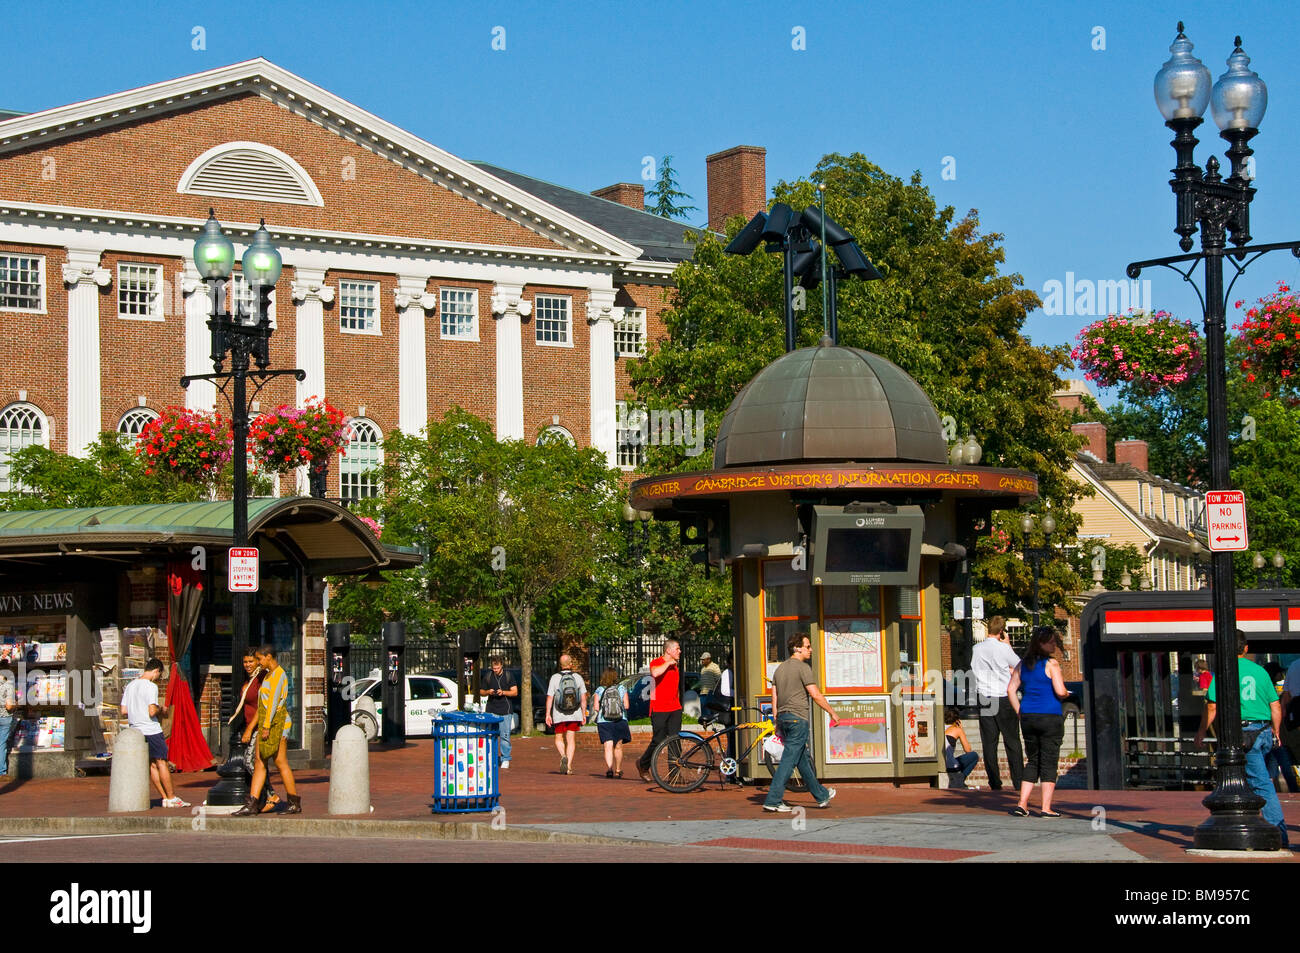 Harvard square Cambridge Massachusetts - Stock Image